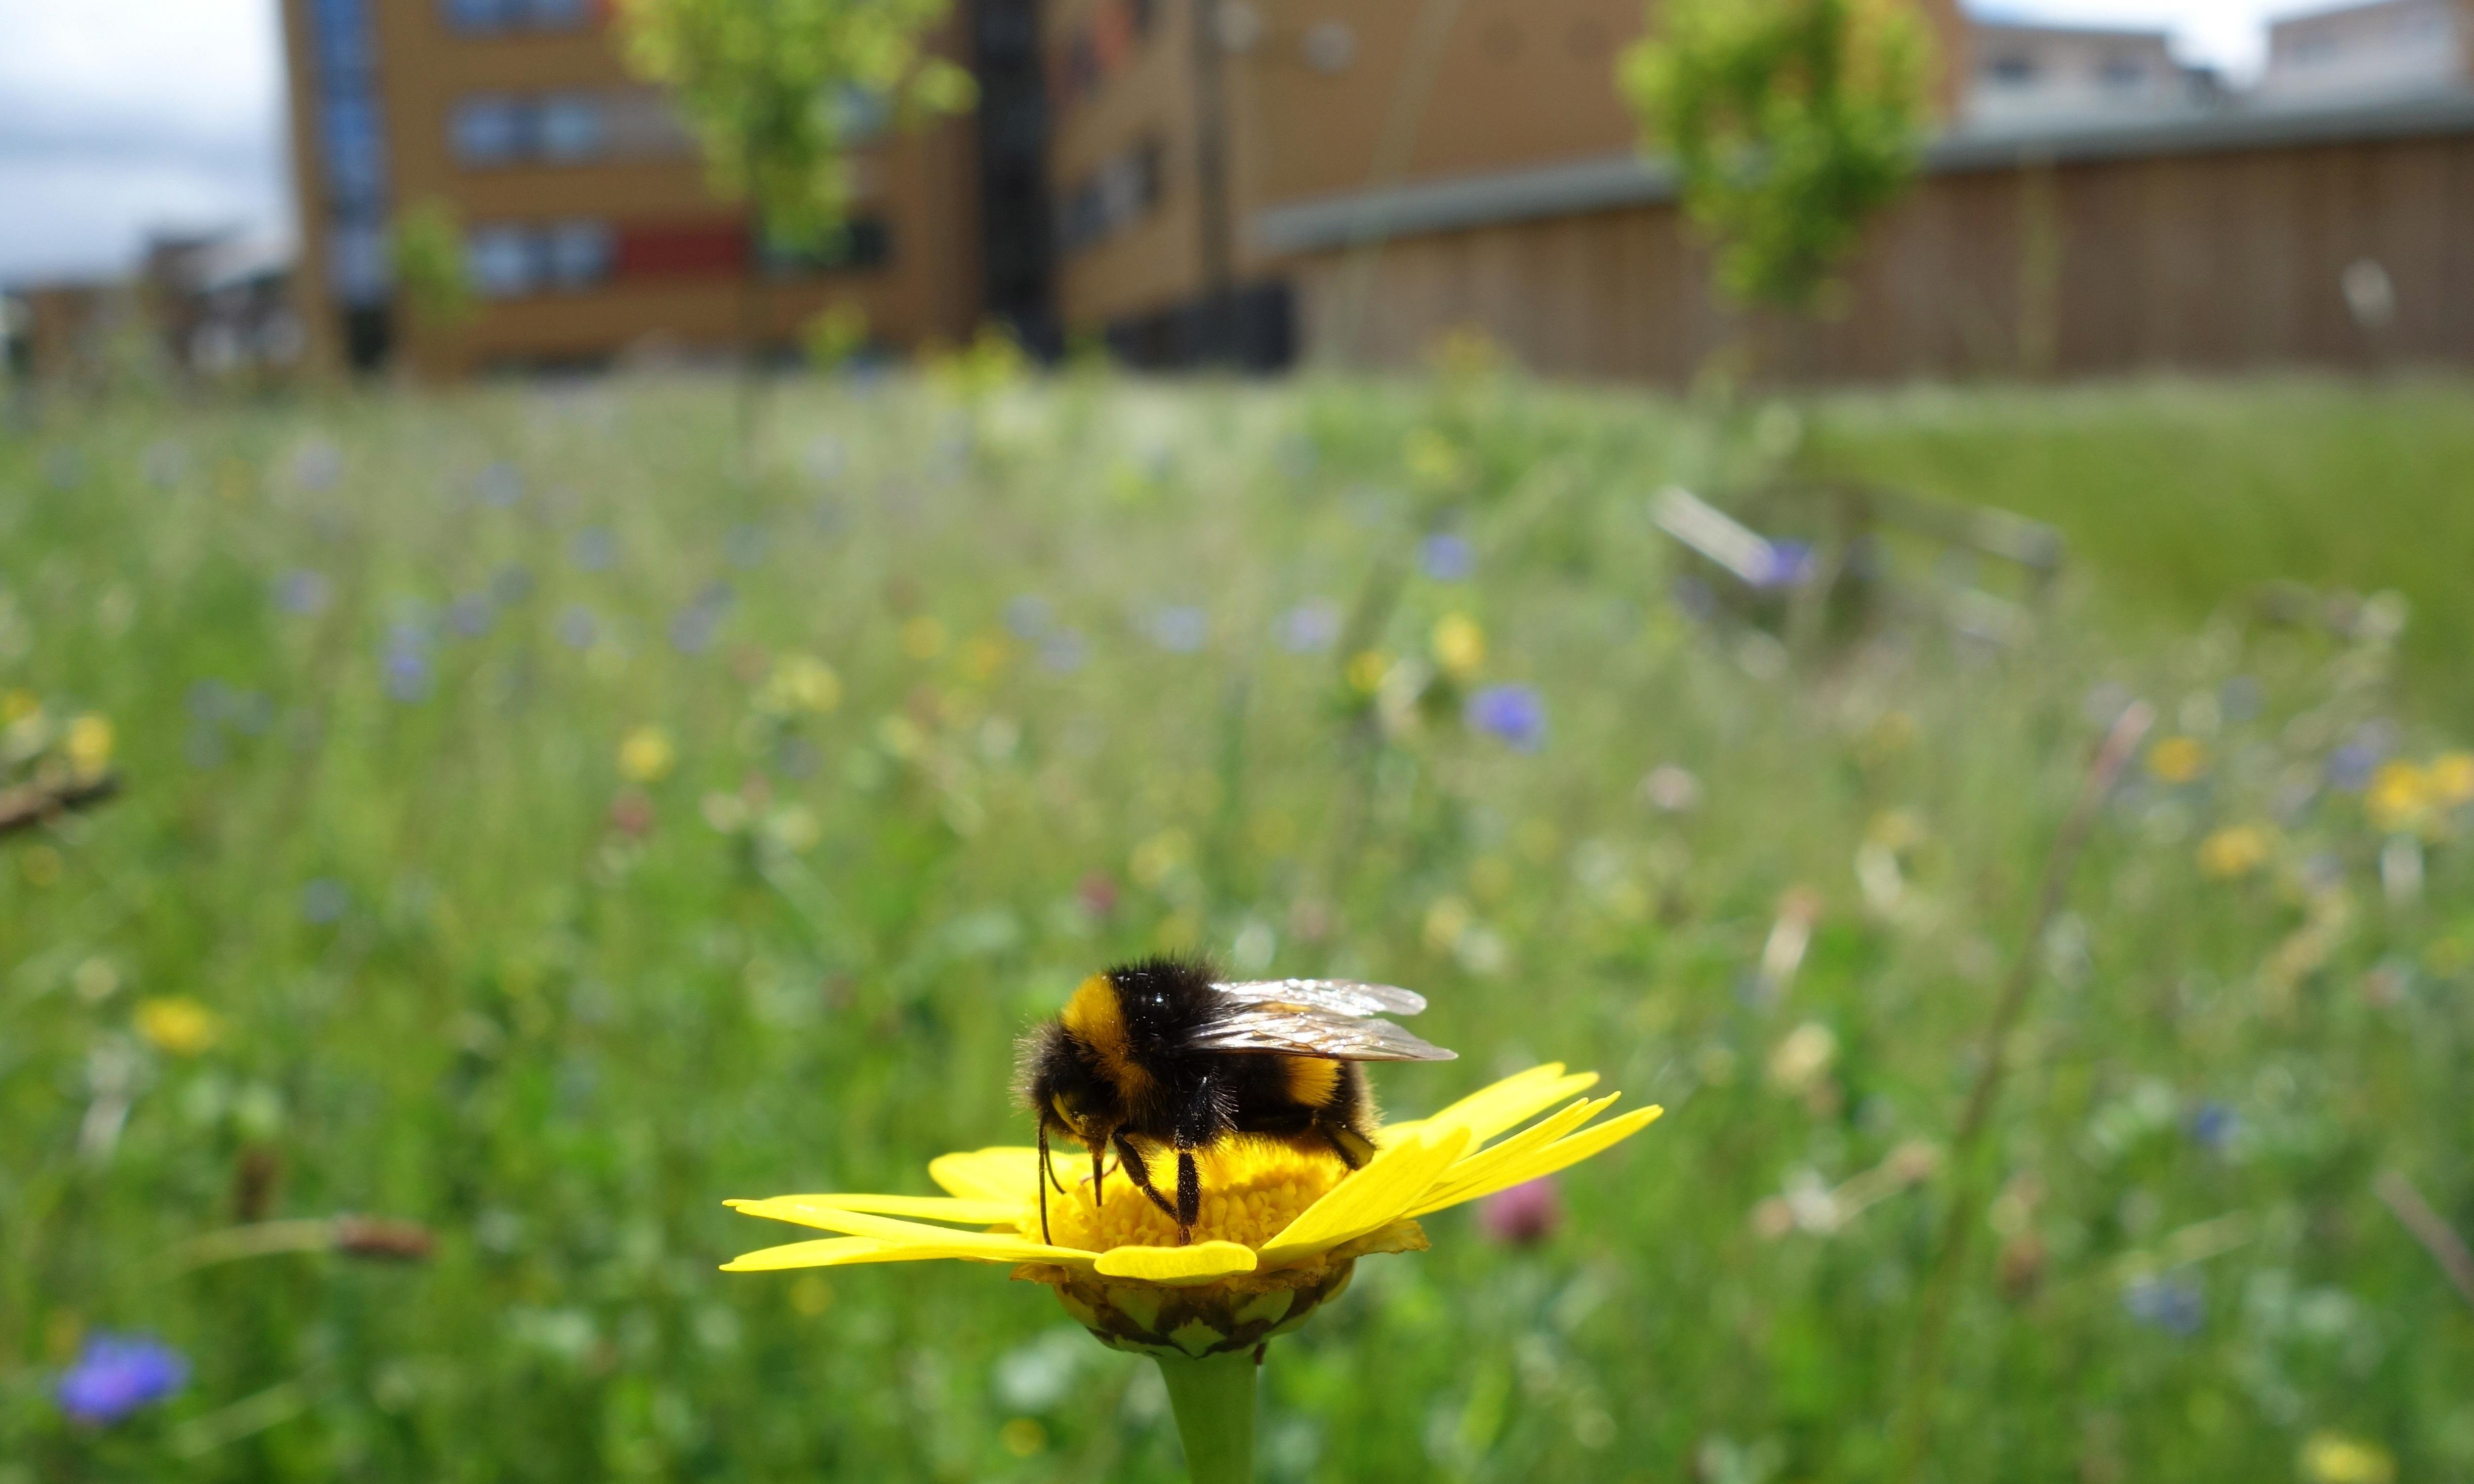 City bees: allotments and gardens can help arrest decline – study